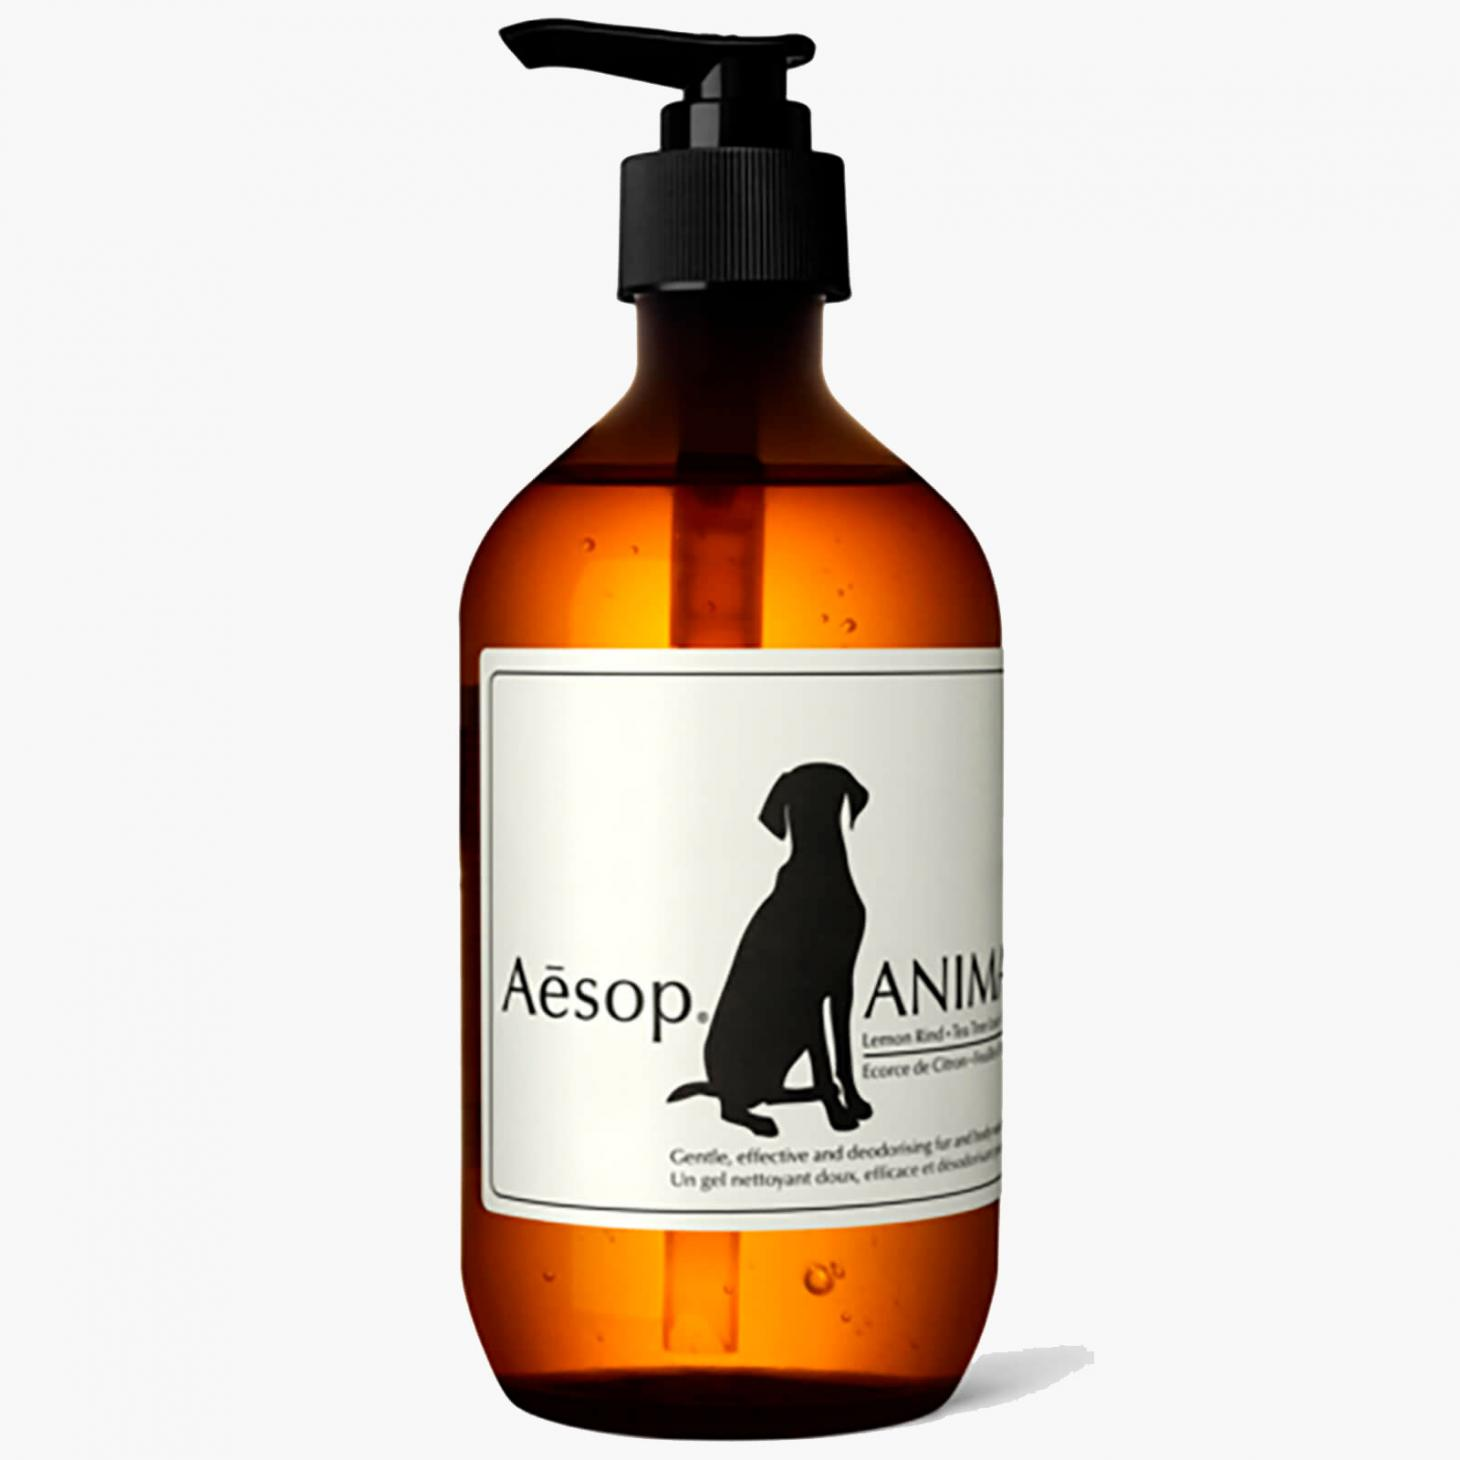 aesop animal wash in brown bottle against grey background